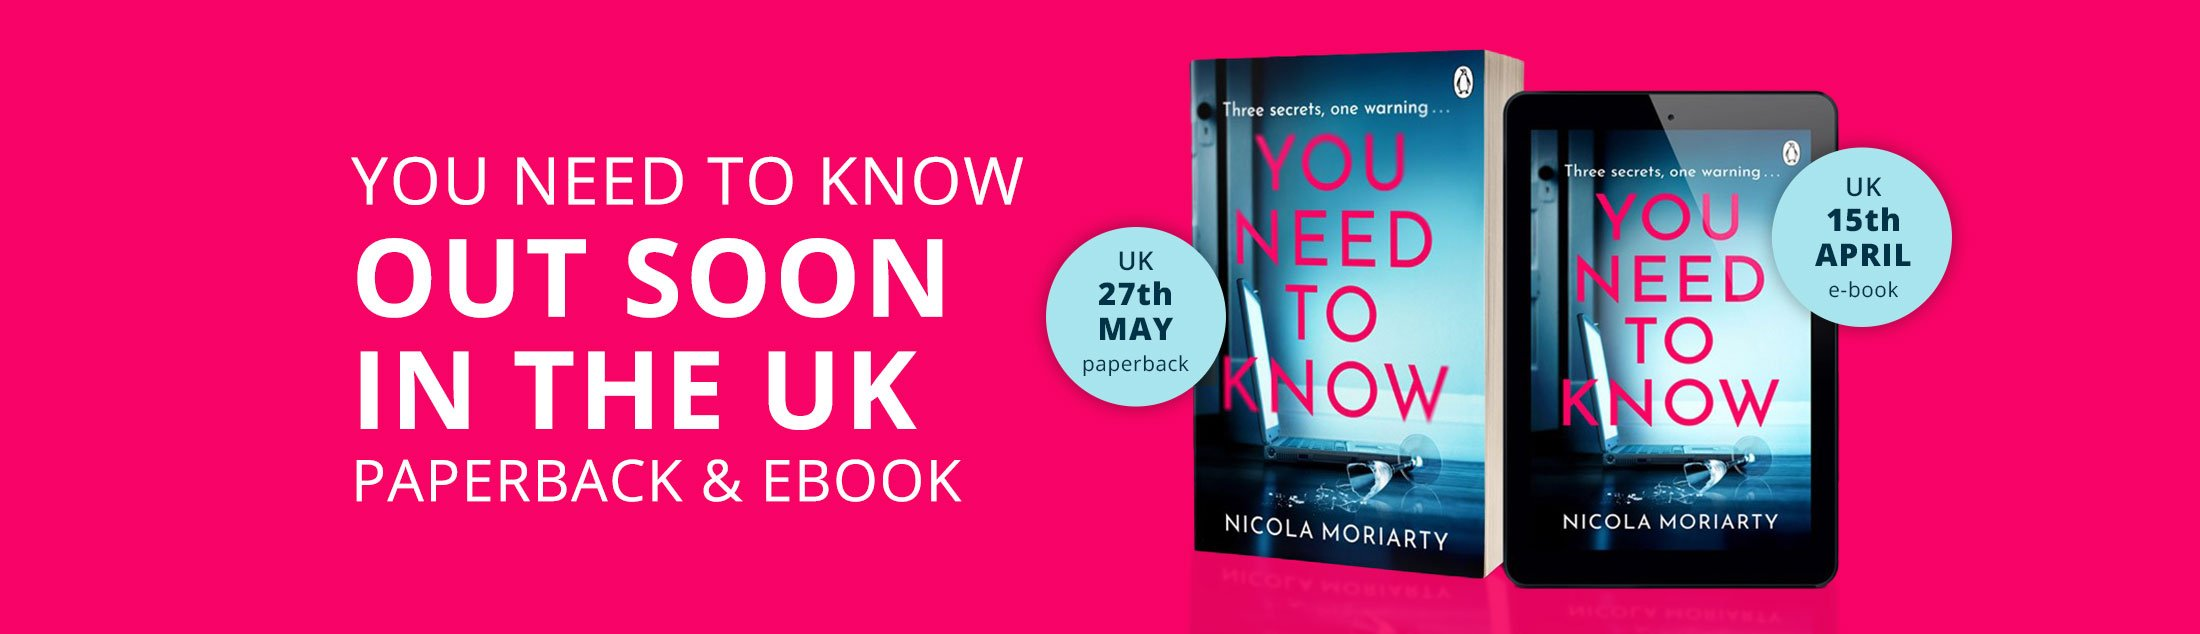 You Need to Know - Out Soon in the UK